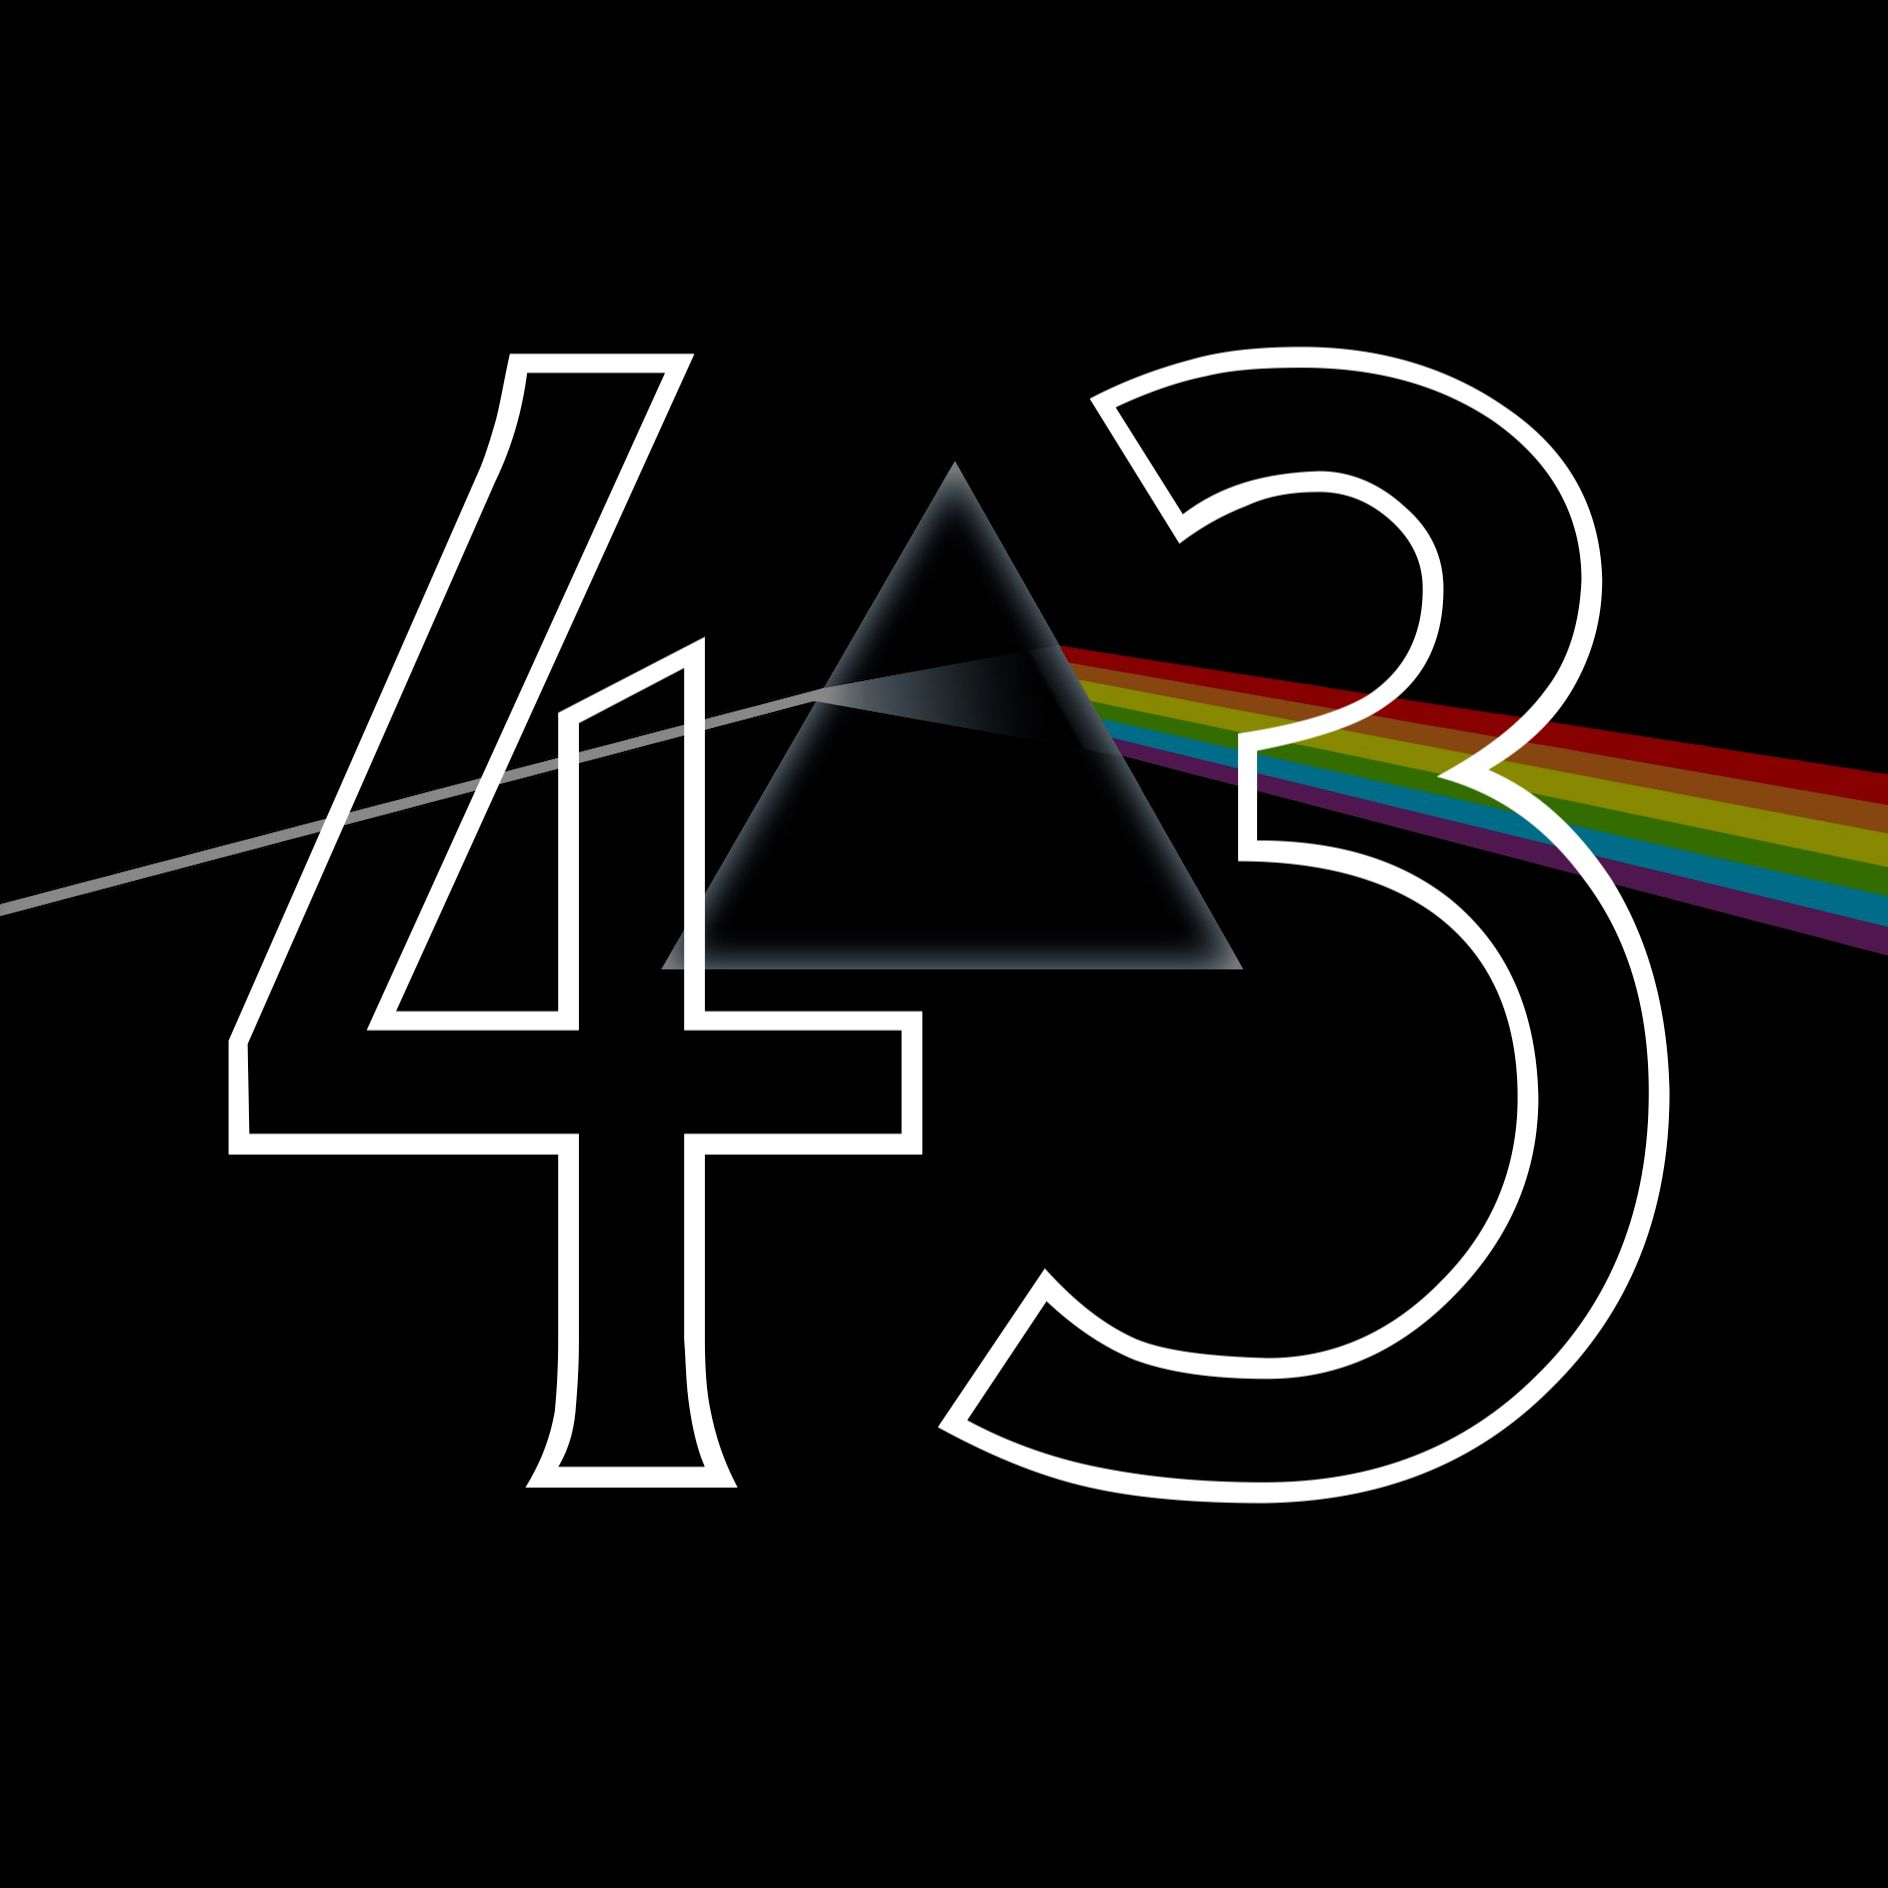 43 Dark Side of the Moon.jpg